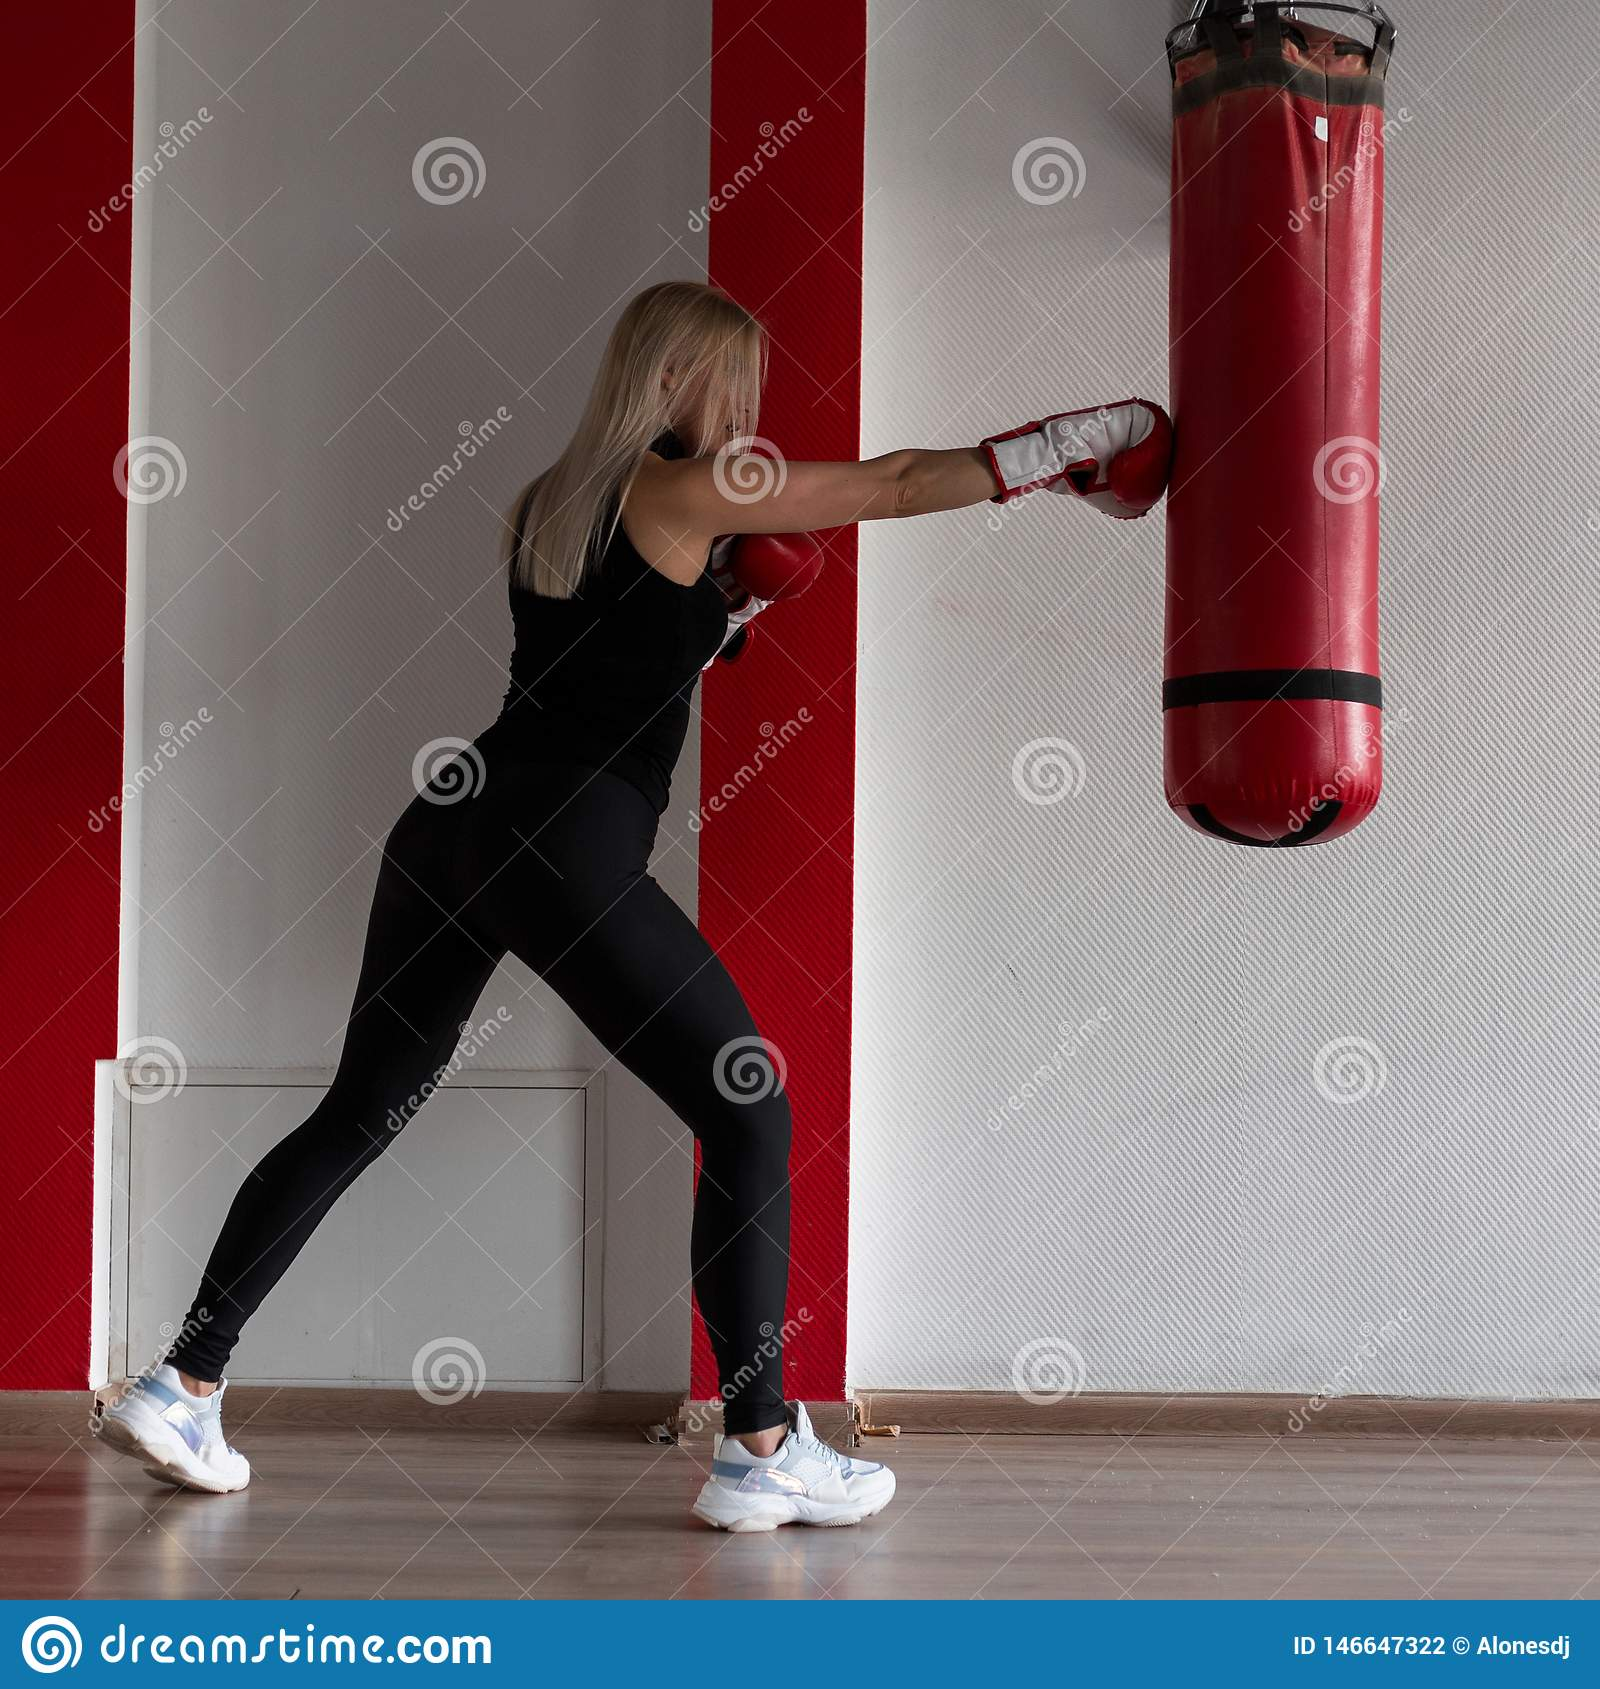 Young woman in black sportswear in stylish sneakers in red boxing gloves beats a punching bag in a modern gym. Girl in training